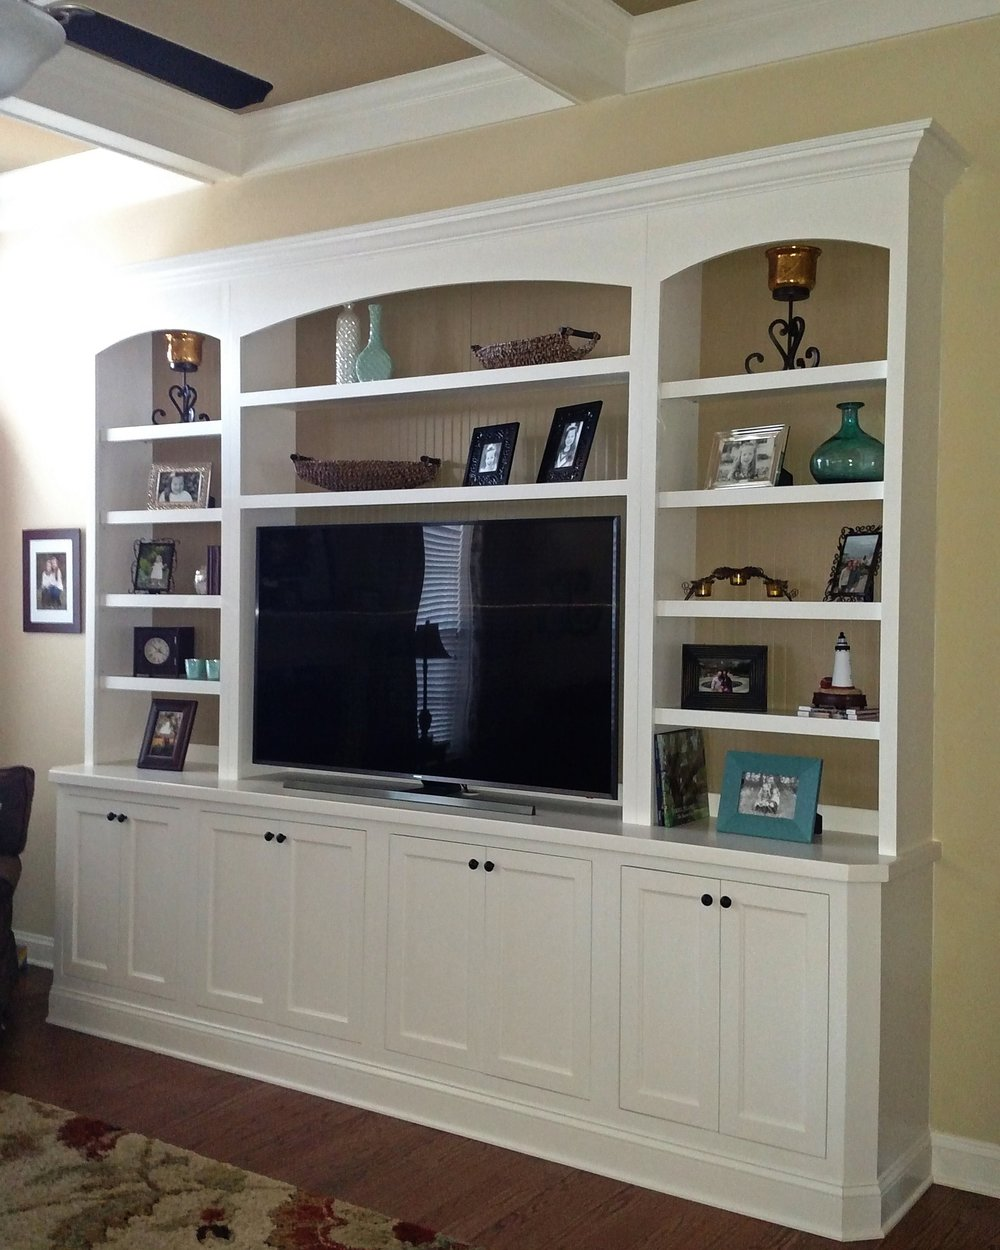 centers entertainment custom built cabinets ins in cabinet window living builtins seats room